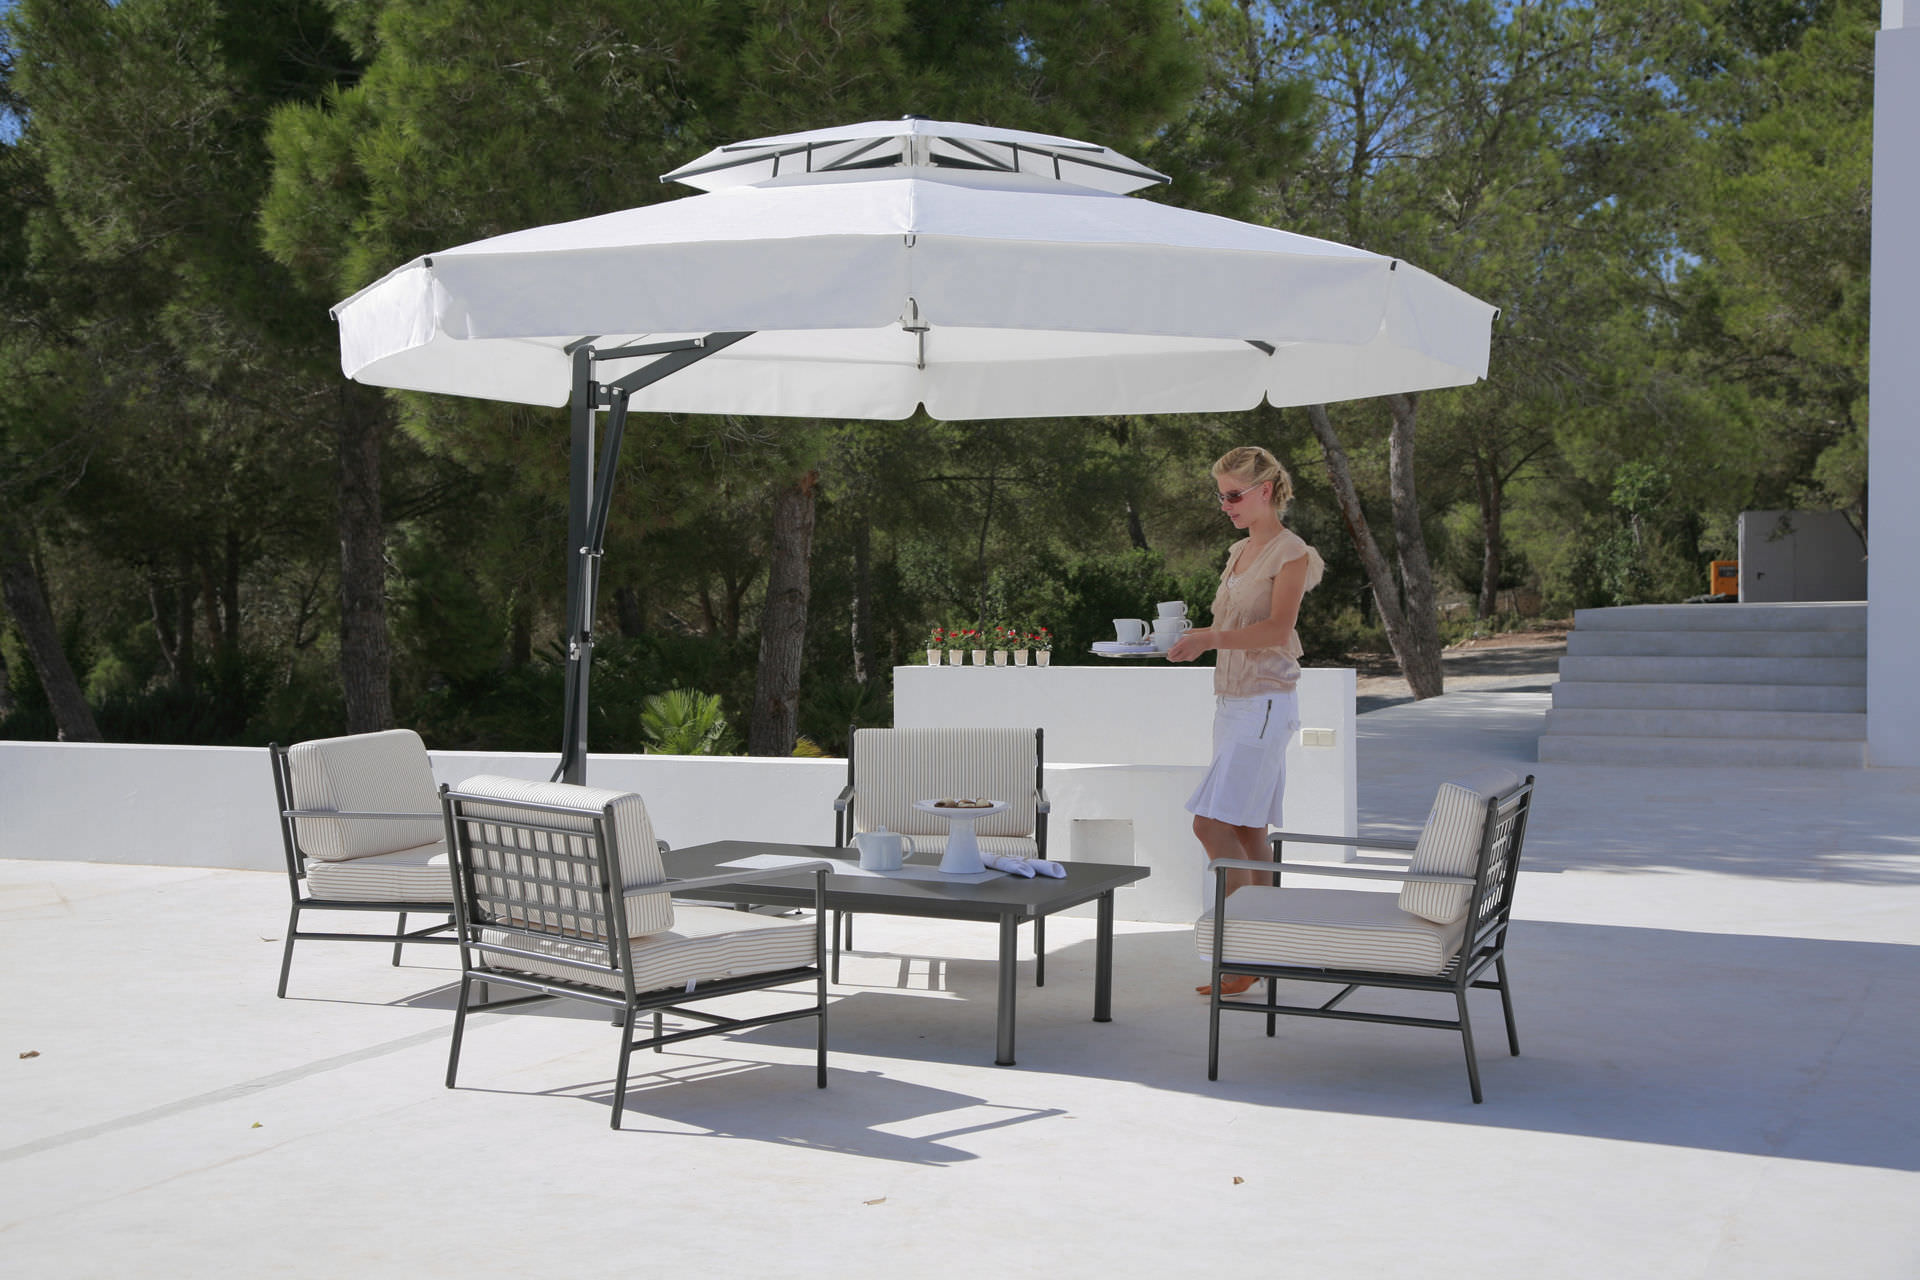 ... Offset Patio Umbrella / For Bars / For Public Pools / For Hotels  BELVEDERE CARAVITA ...